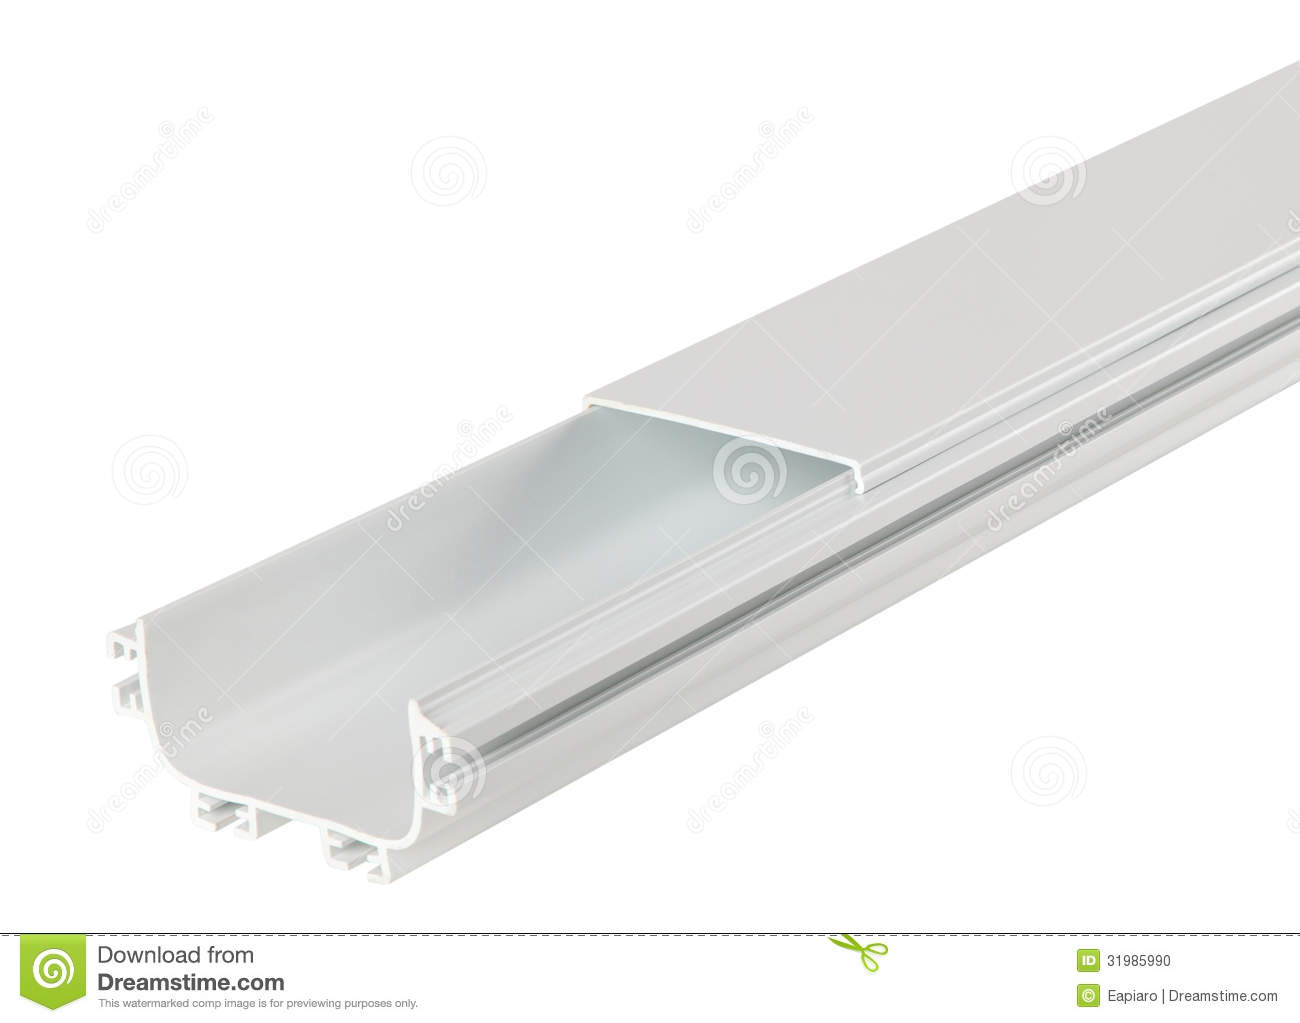 plastic cable conduit or tray stock photo image of white detailed rh dreamstime com Electrical Wiring plastic cable conduit